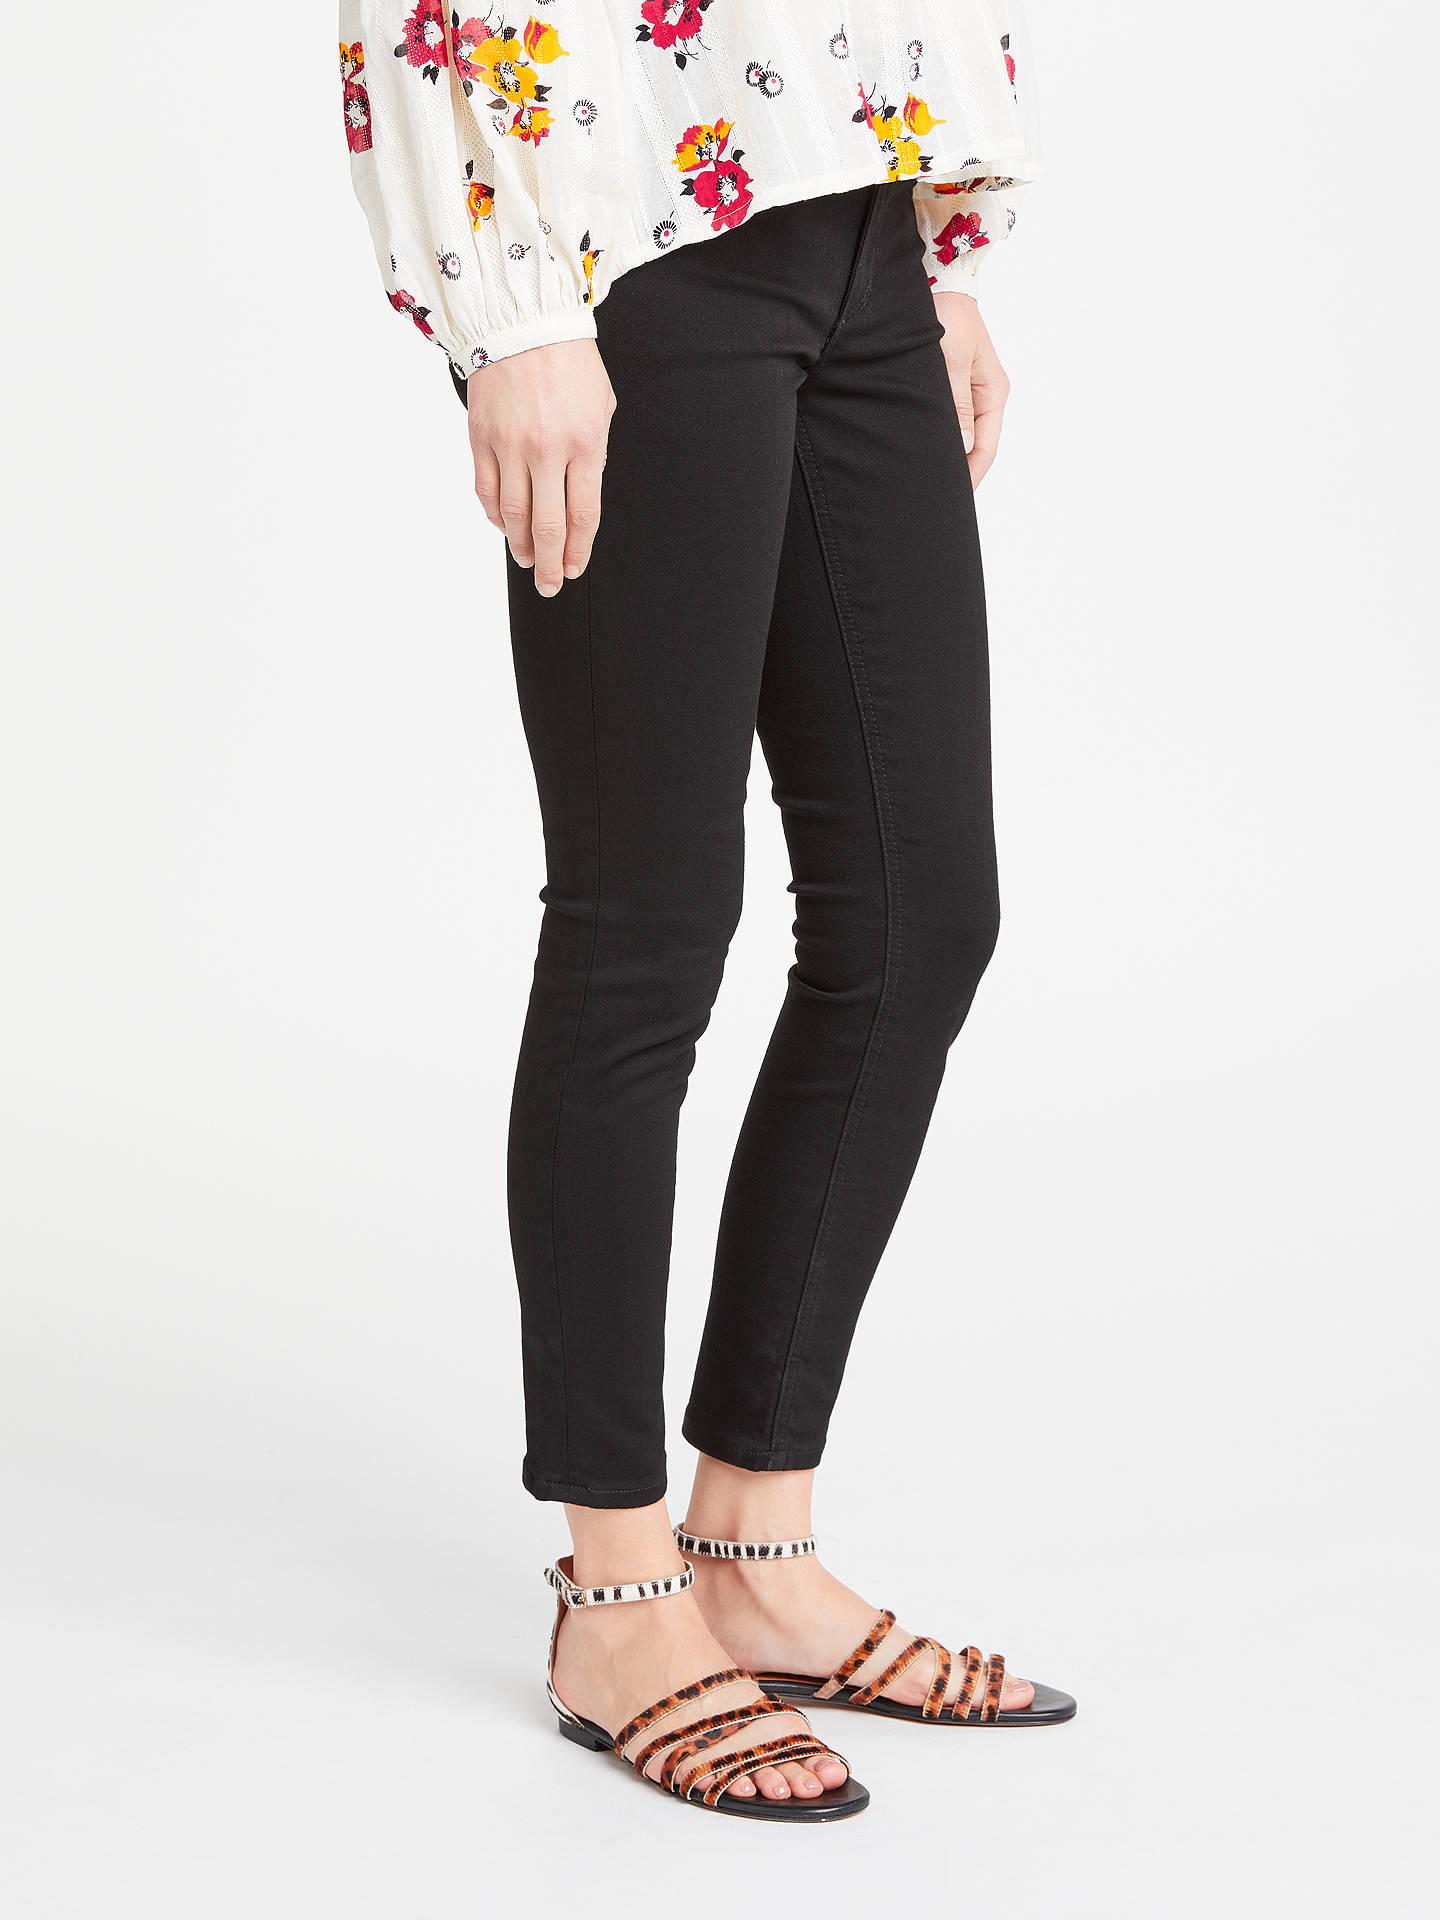 BuyAND/OR Avalon Ankle Grazer Jeans, Black, 26 Online at johnlewis.com